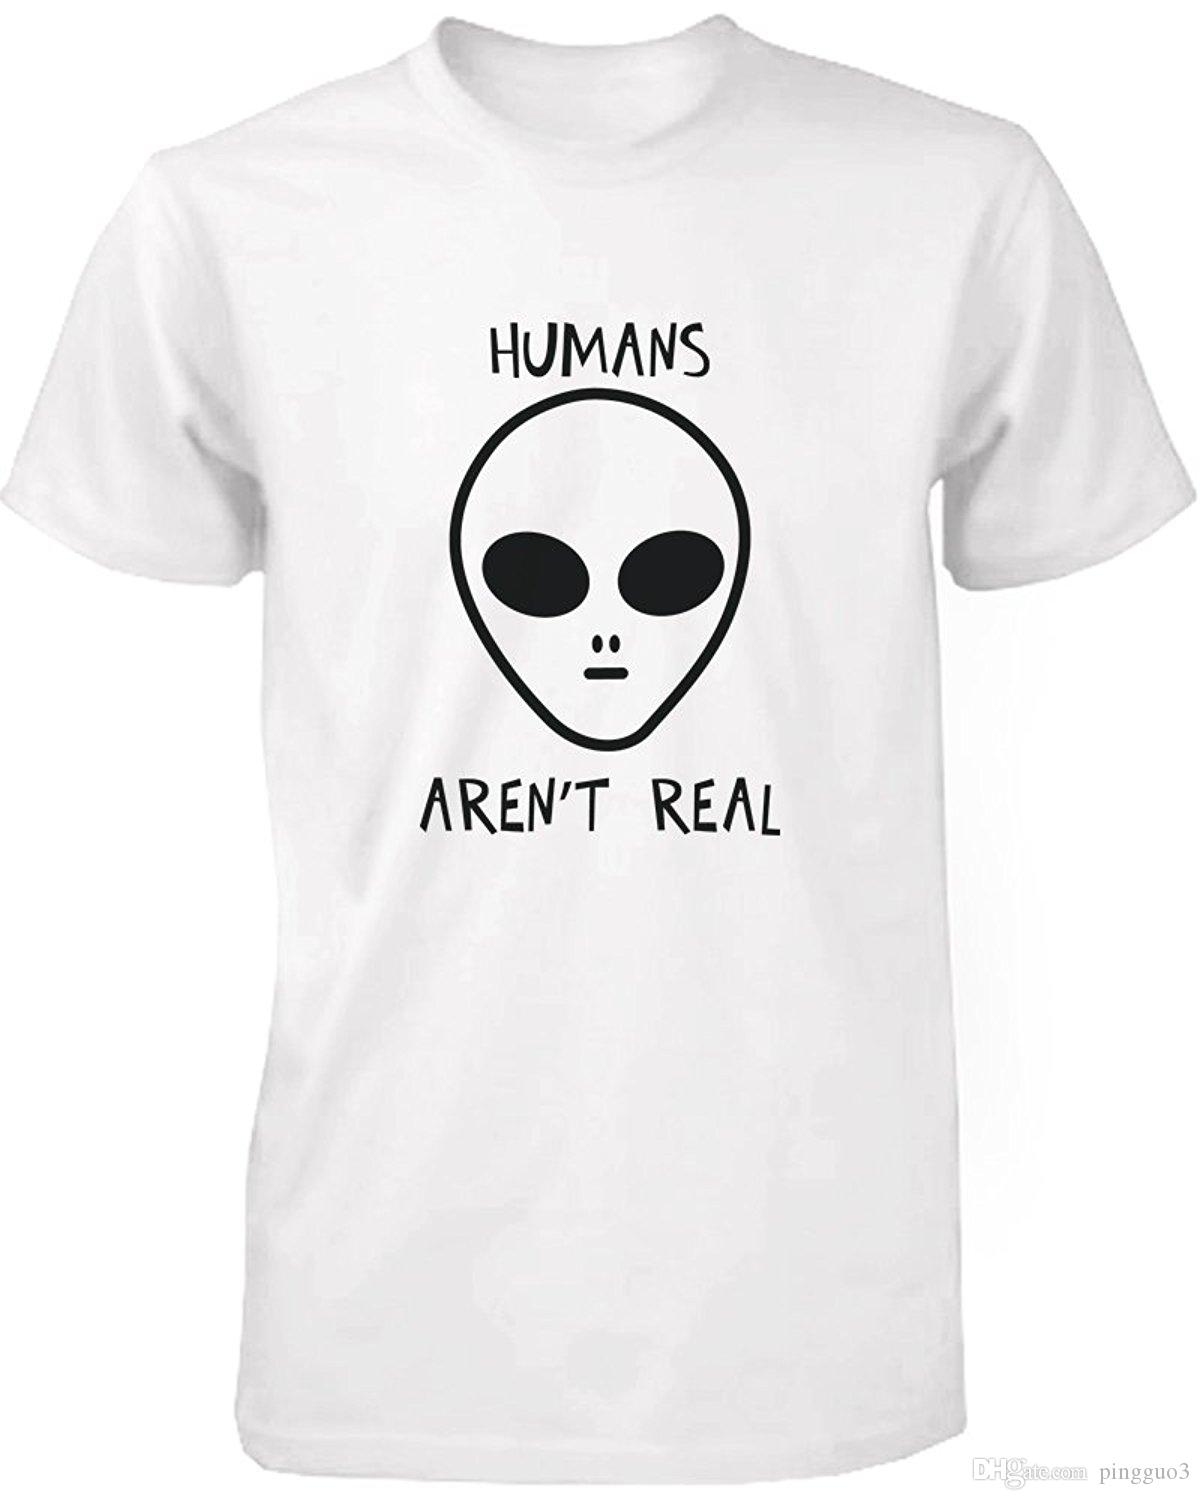 Humans Aren T Real Alien Men S Funny T Shirt Humorous Tee Cute Graphic T  Shirt 100% Cotton T Shirts Brand Clothing Tops Tees As T Shirt Online T  Shirts Buy ... cb2fbd5eaf4